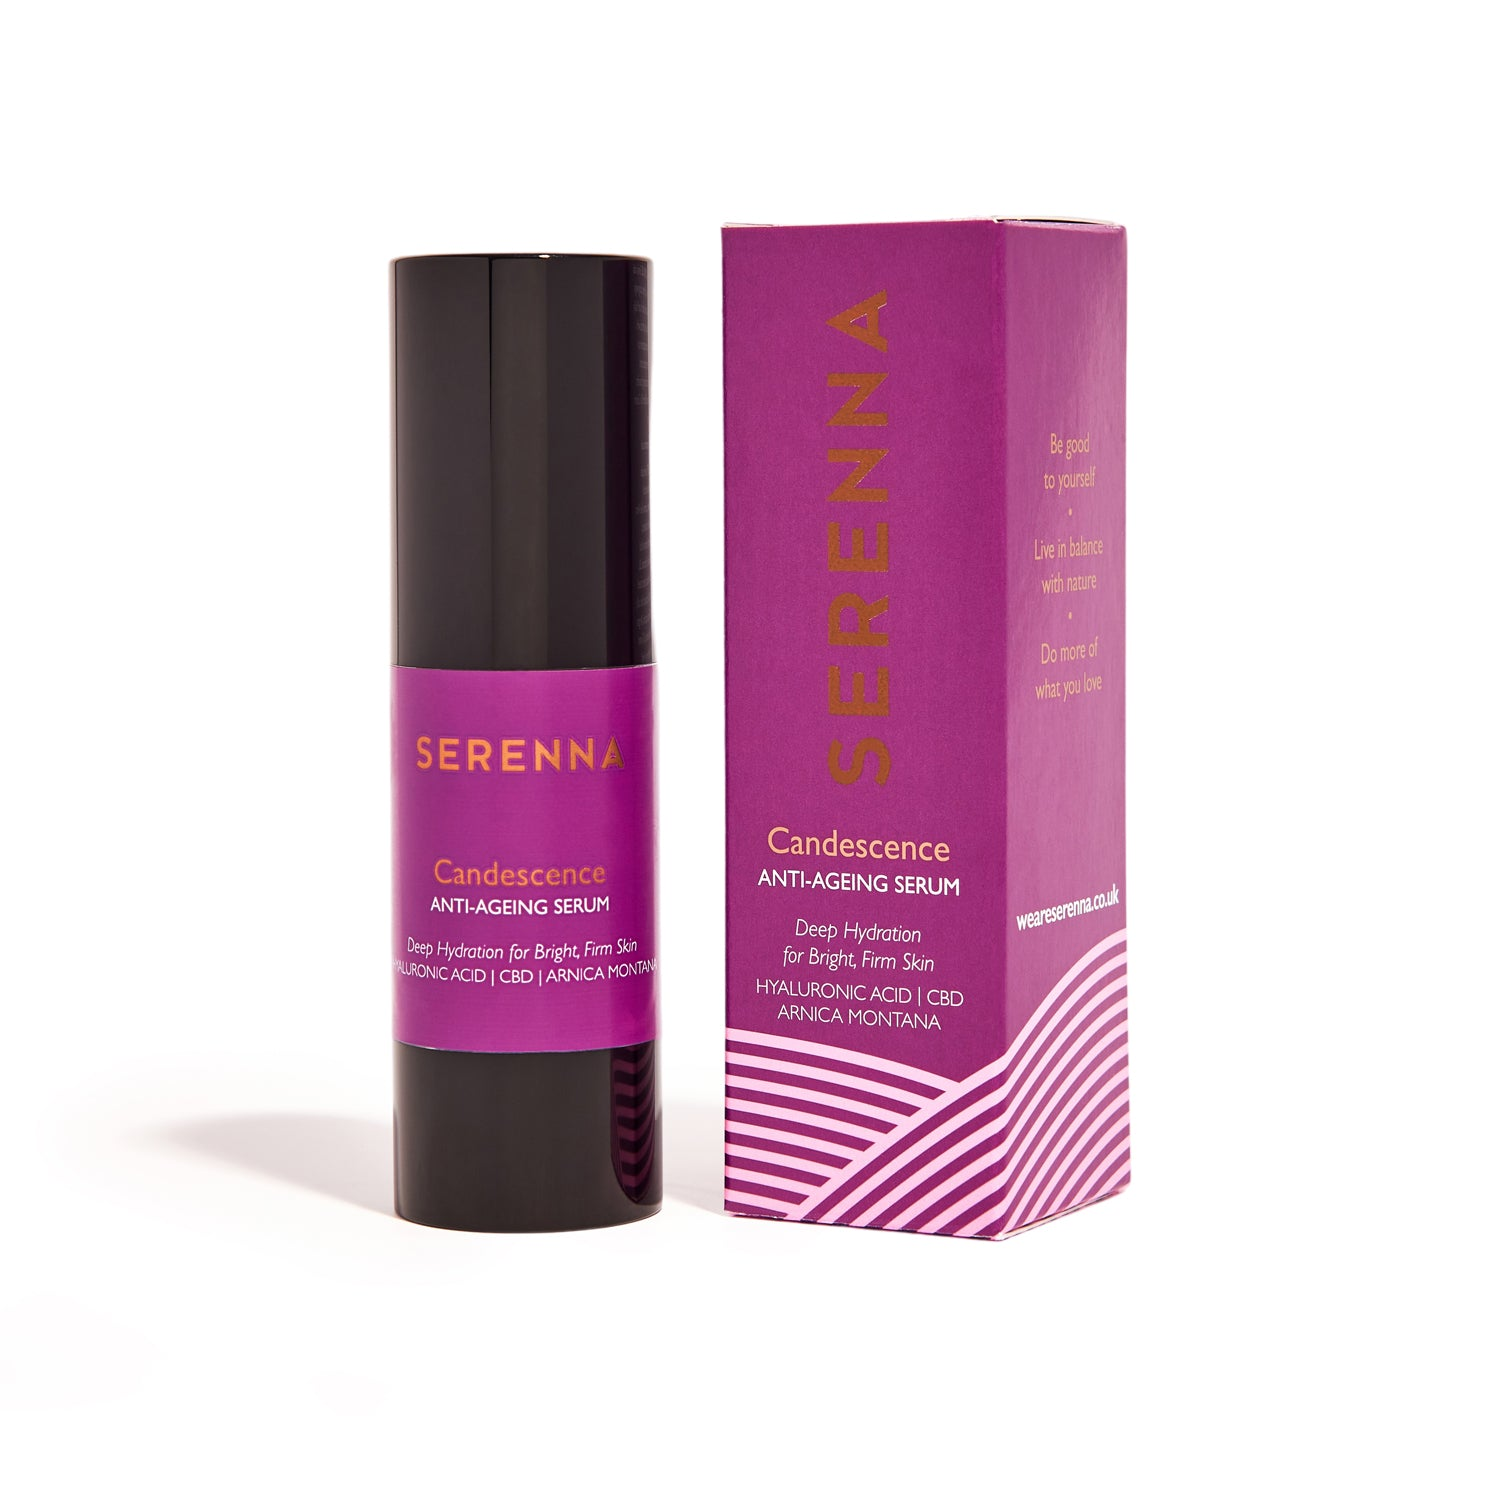 serenna, candescence face serum, vegan skincare, anti ageing